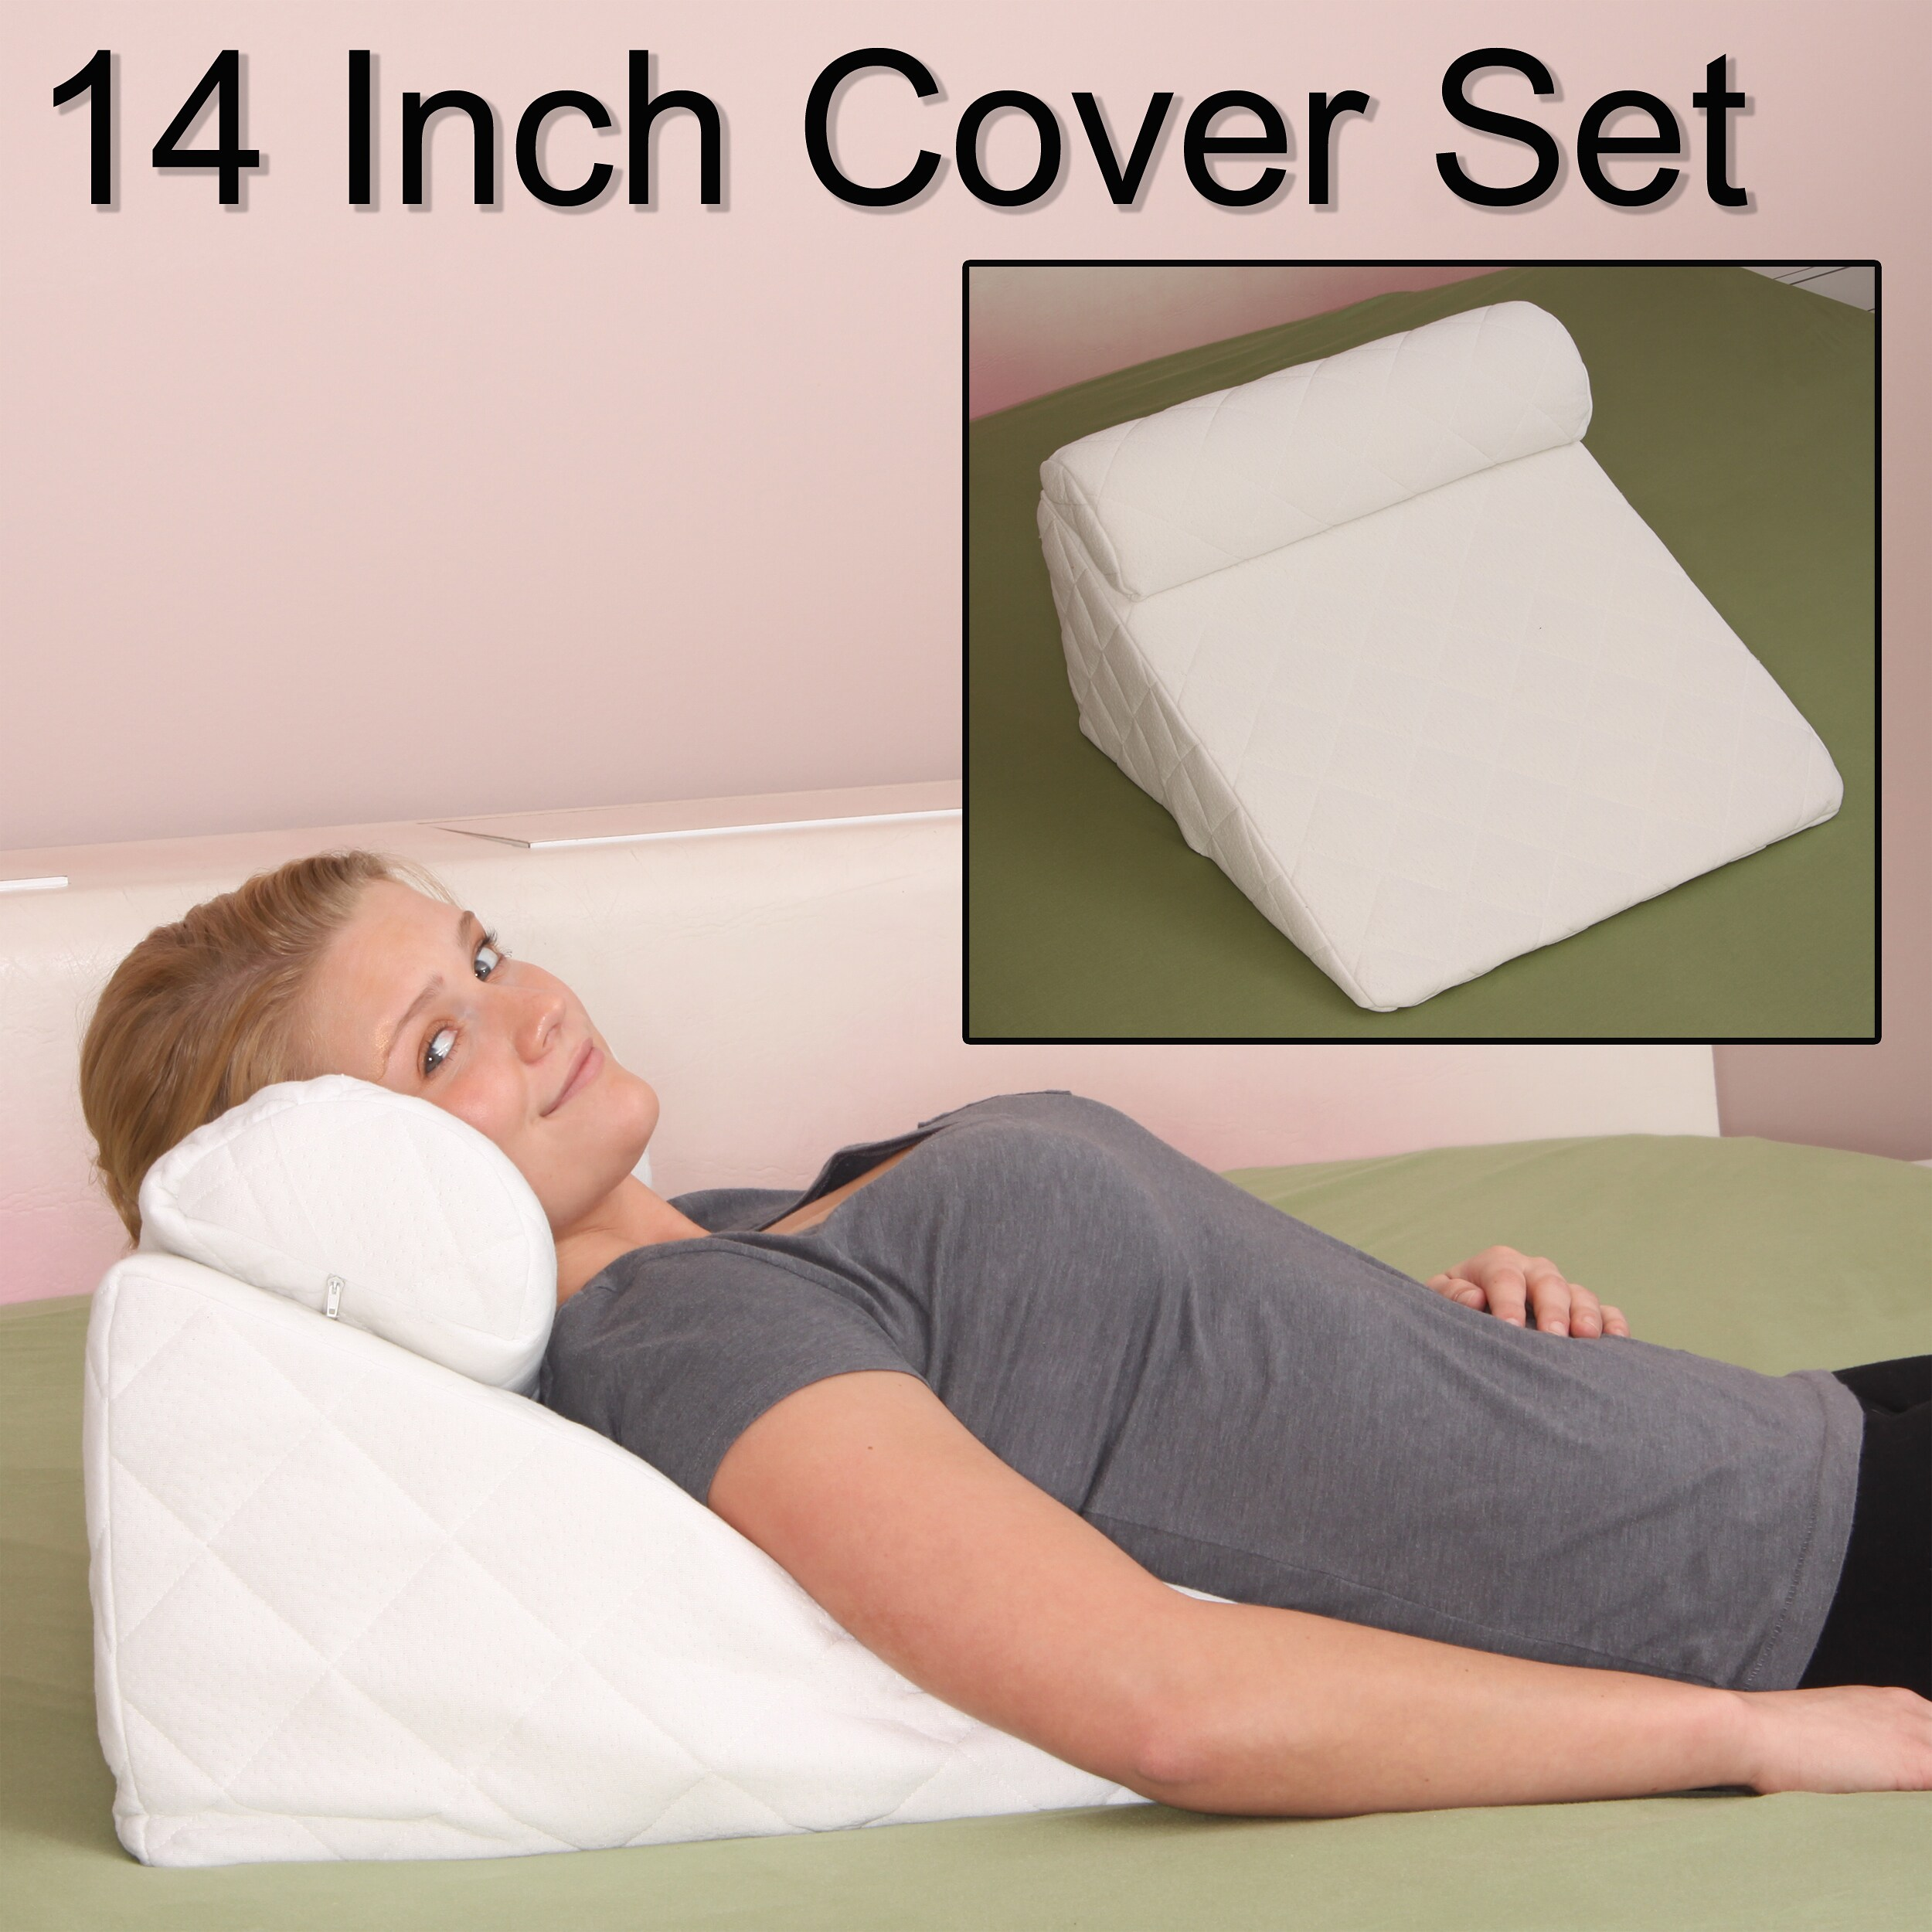 Angled Pillow For Acid Reflux Deluxe Comfort Cover For Bed Wedge Pillow Set 383 Thread Count Pillow Cover White